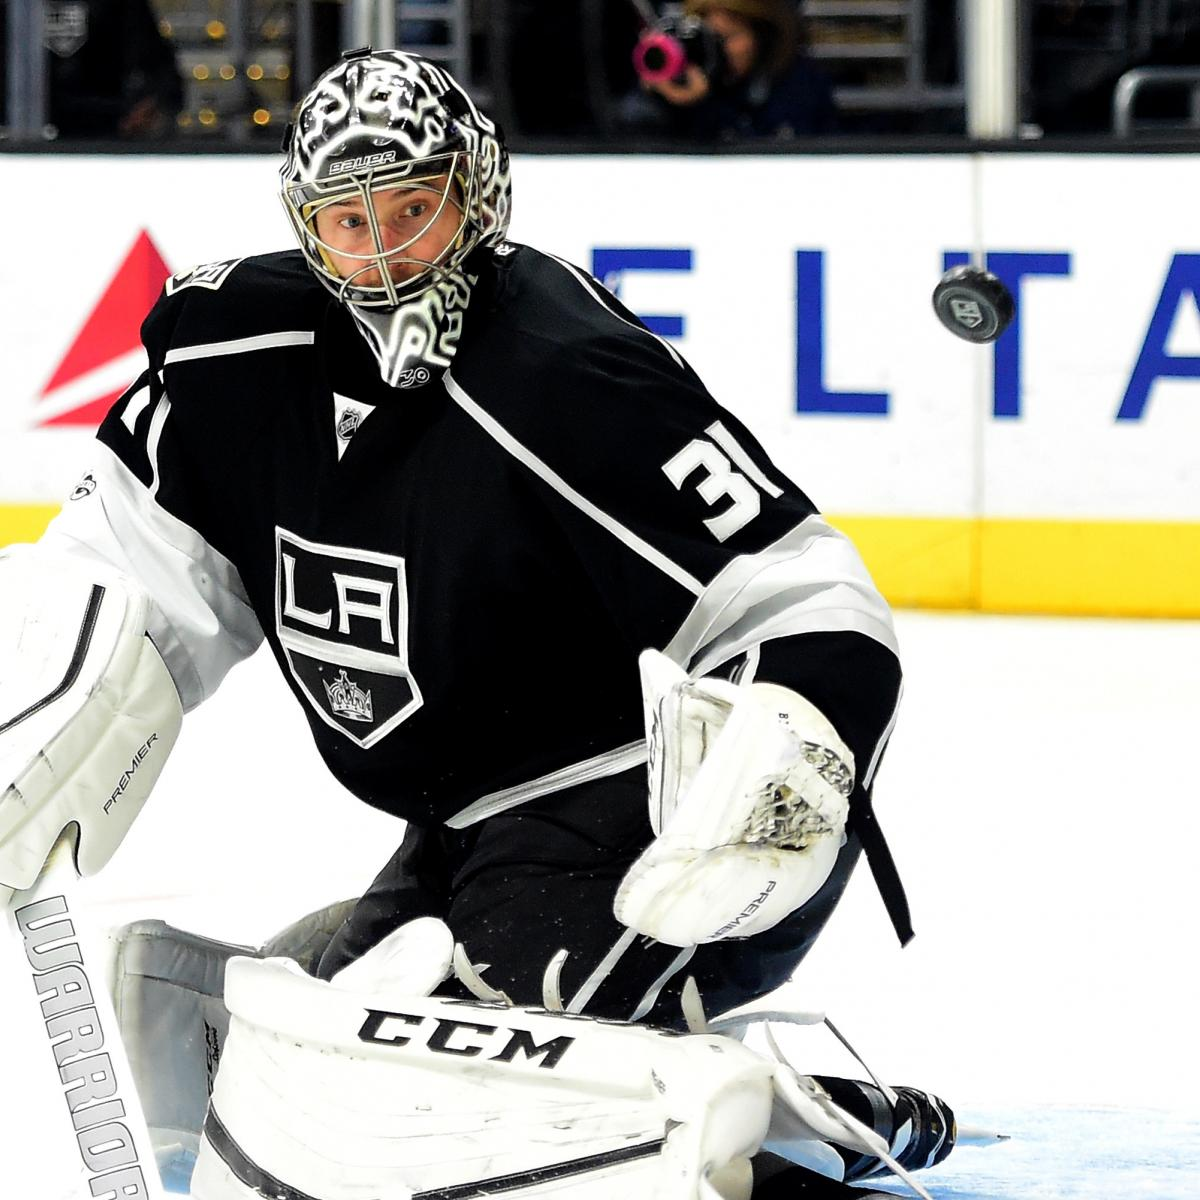 Ben Bishop Traded To Stars In Exchange For 4th-Round Pick